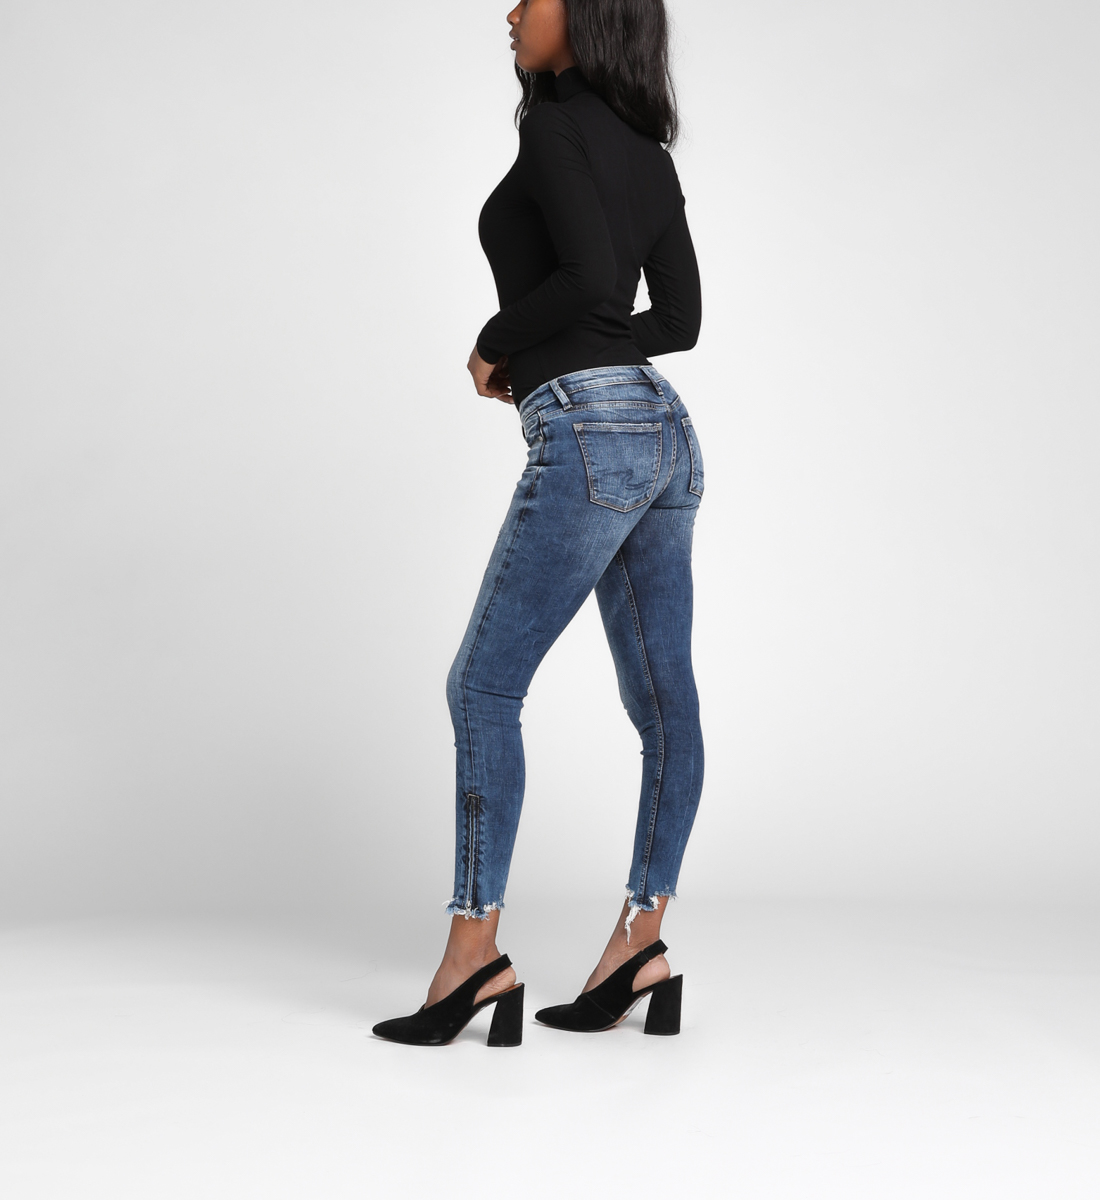 Tuesday Low Rise Ankle Skinny Jeans, , hi-res